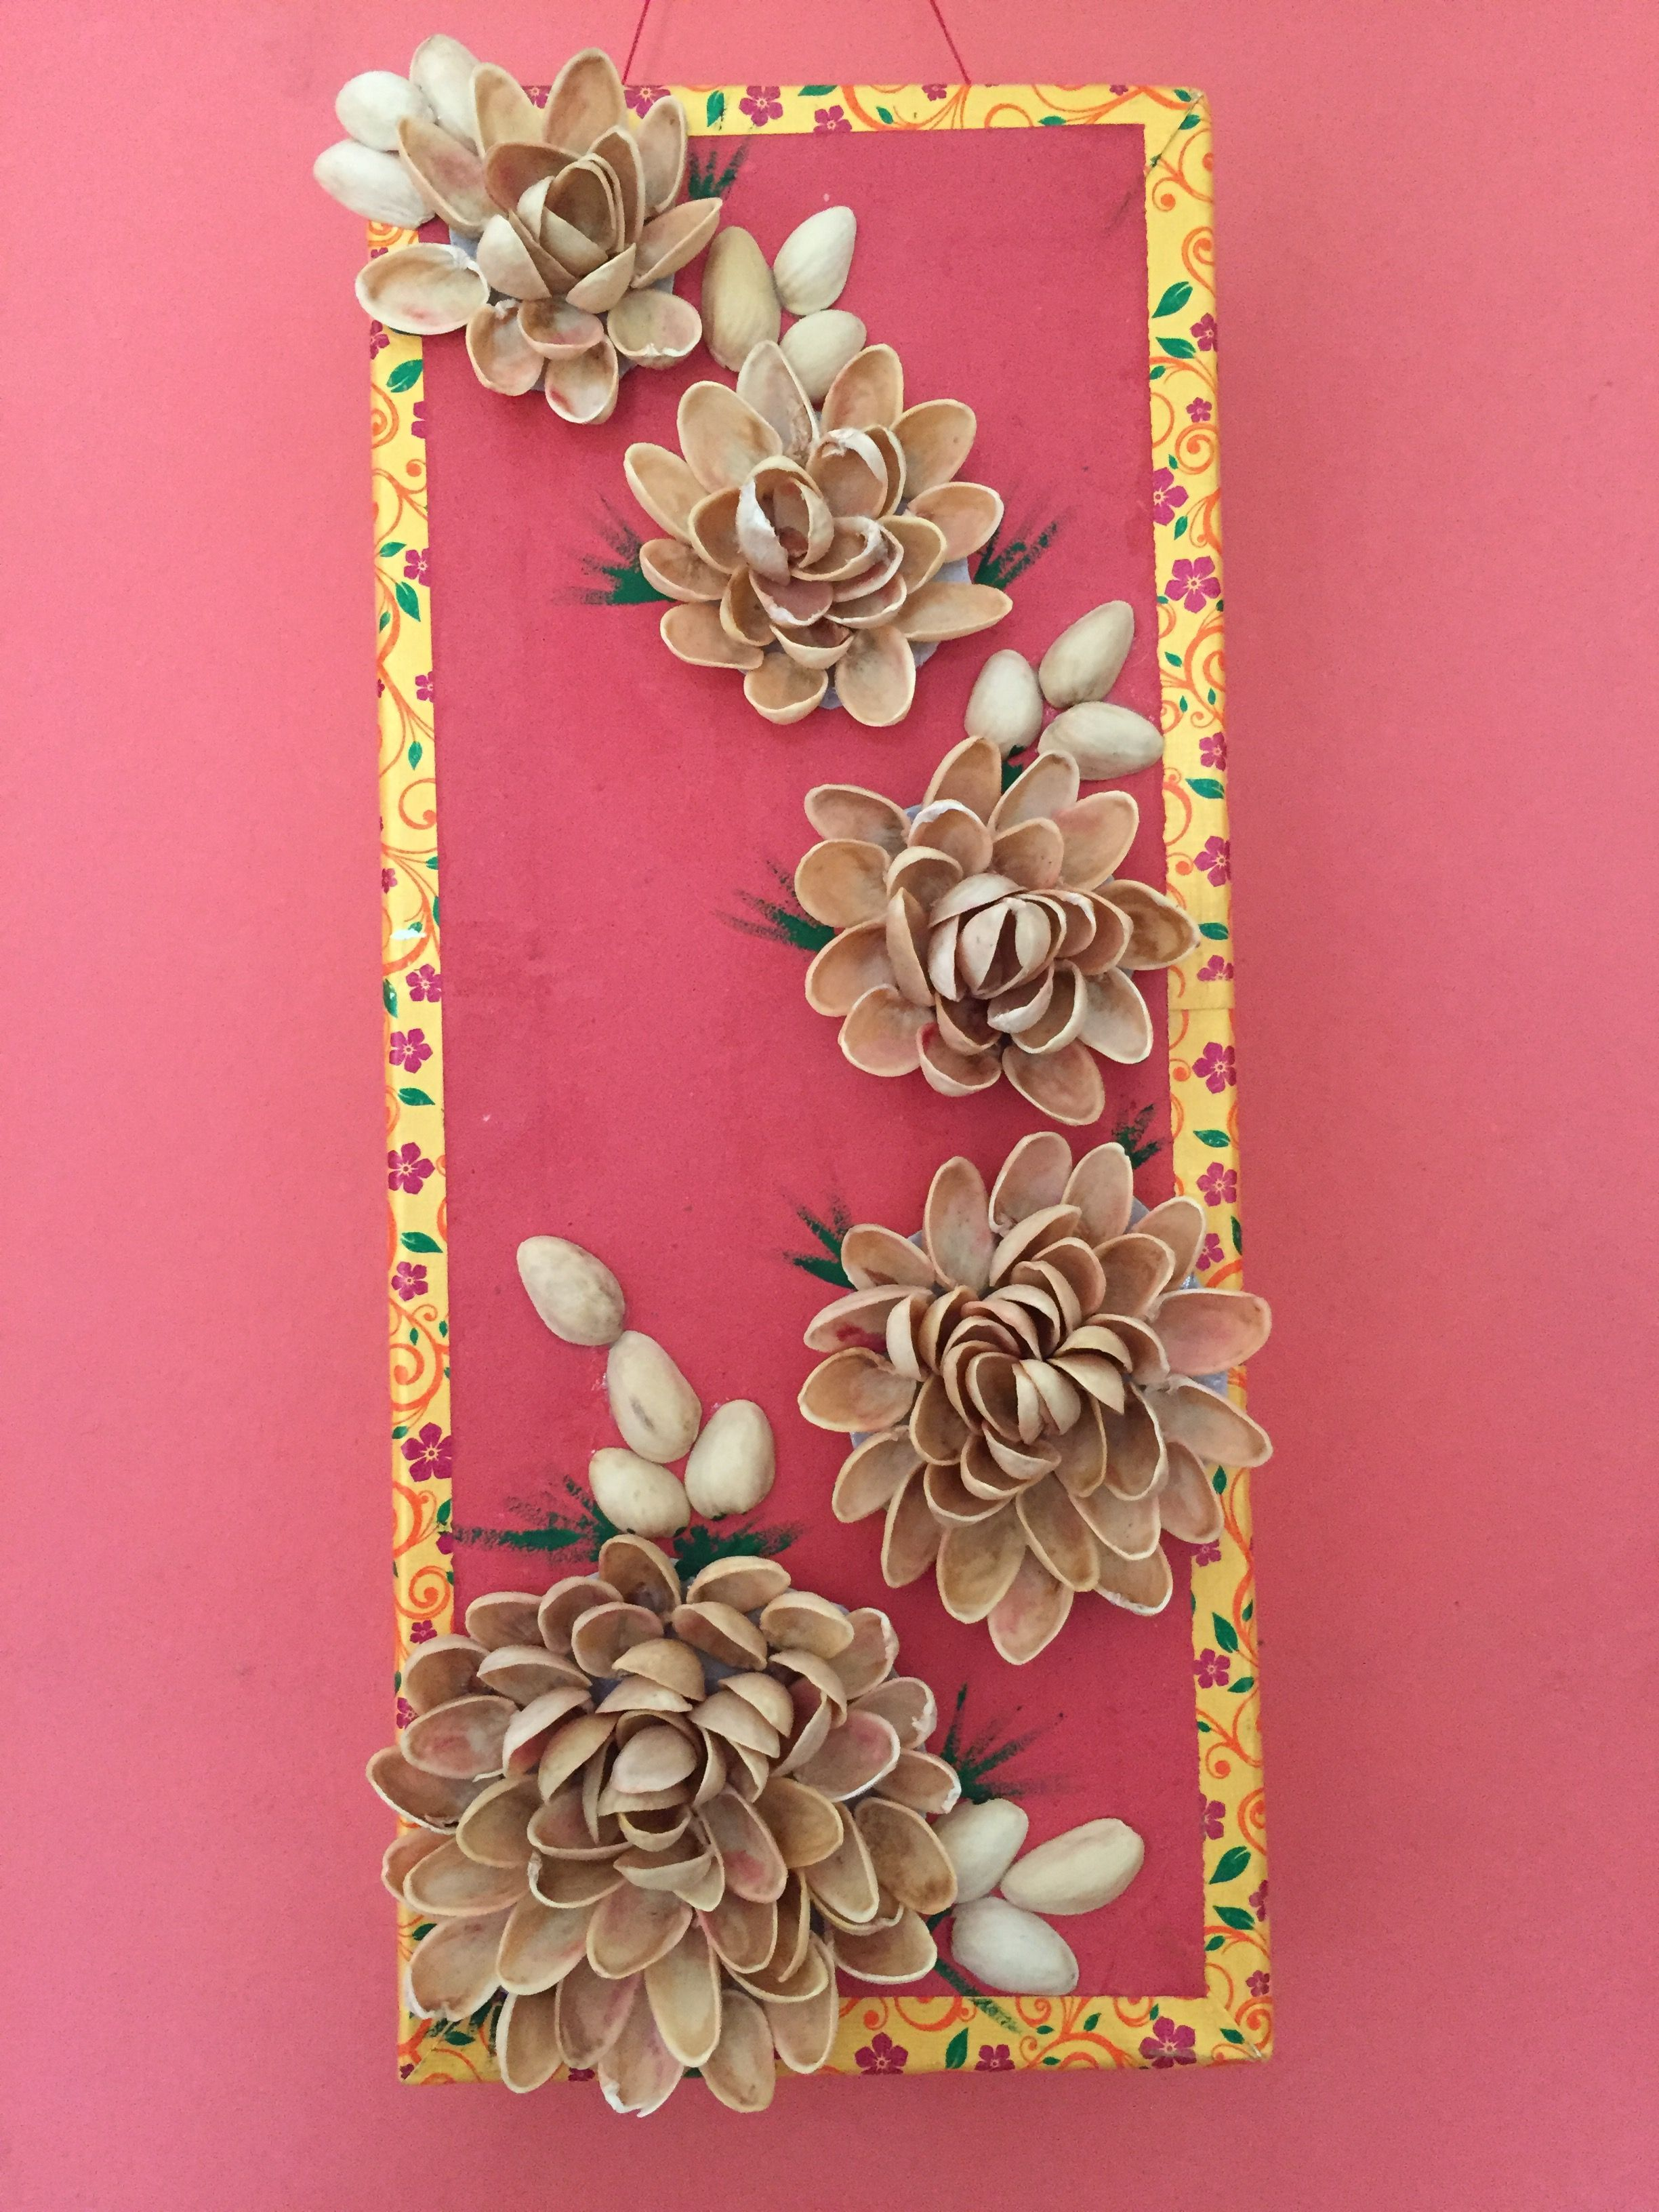 Pista Shell Photo Frame Pista Shell Crafts Shell Crafts Crafts